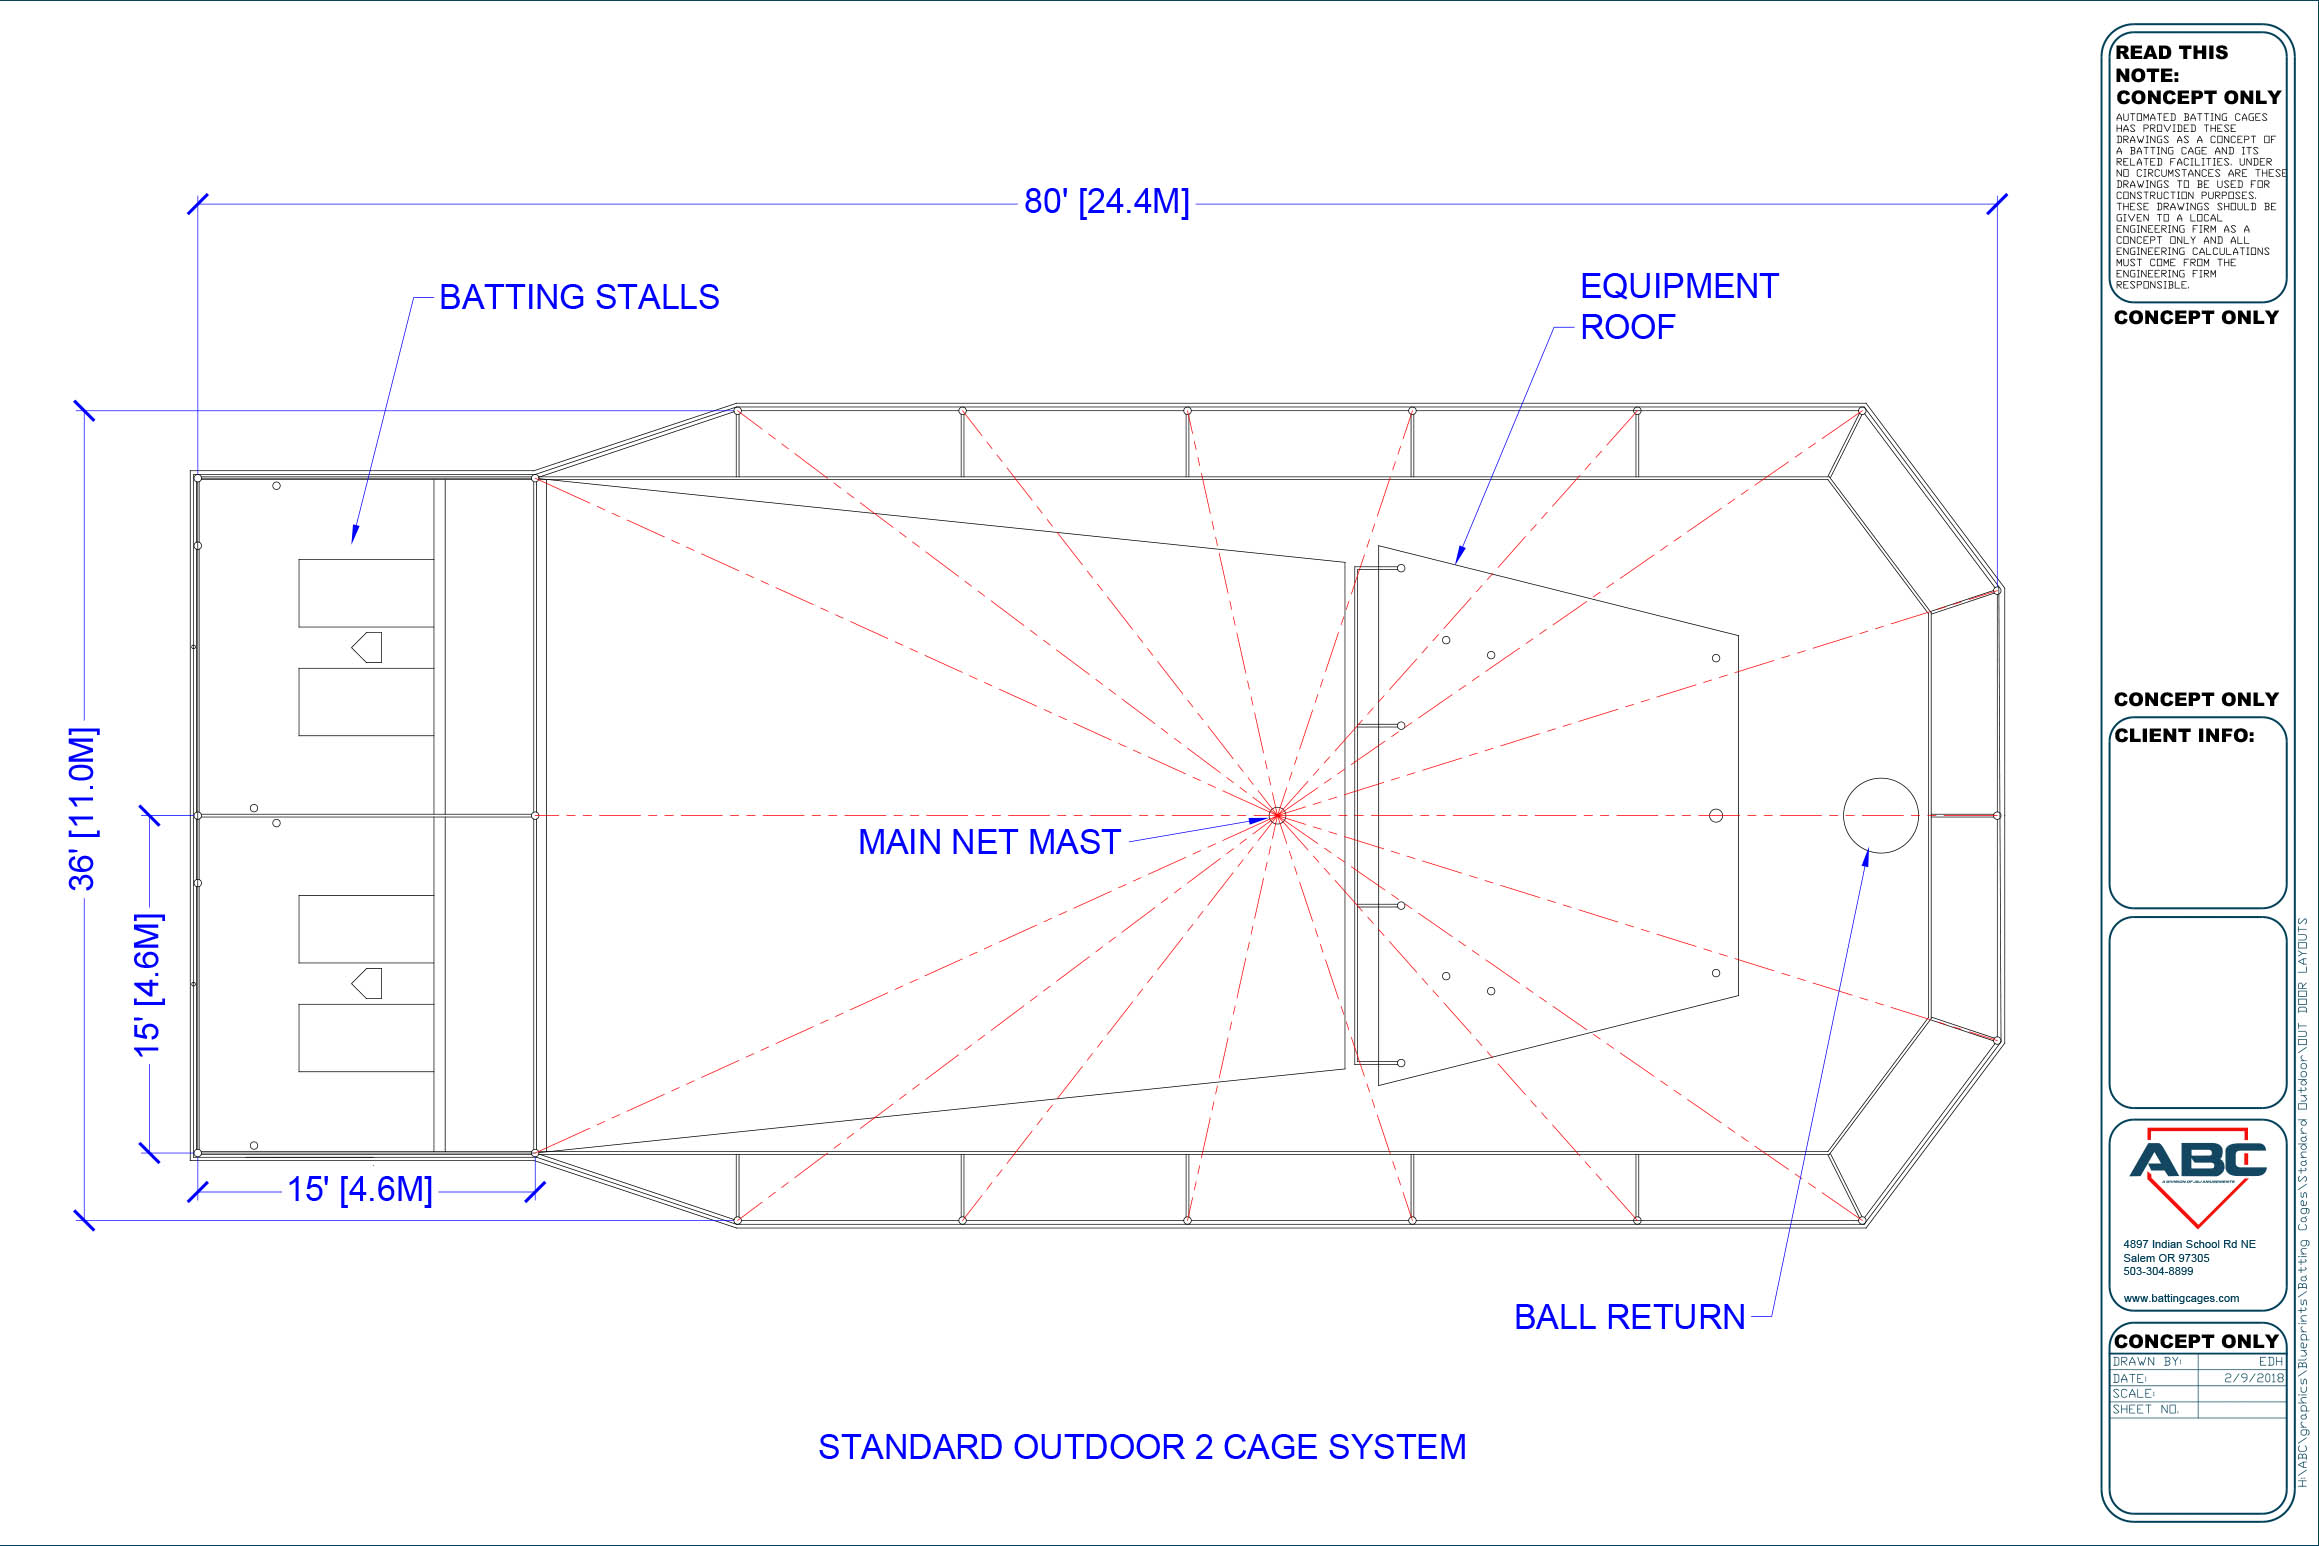 Batting cage blueprints, ABC standard outdoor 2 cage system